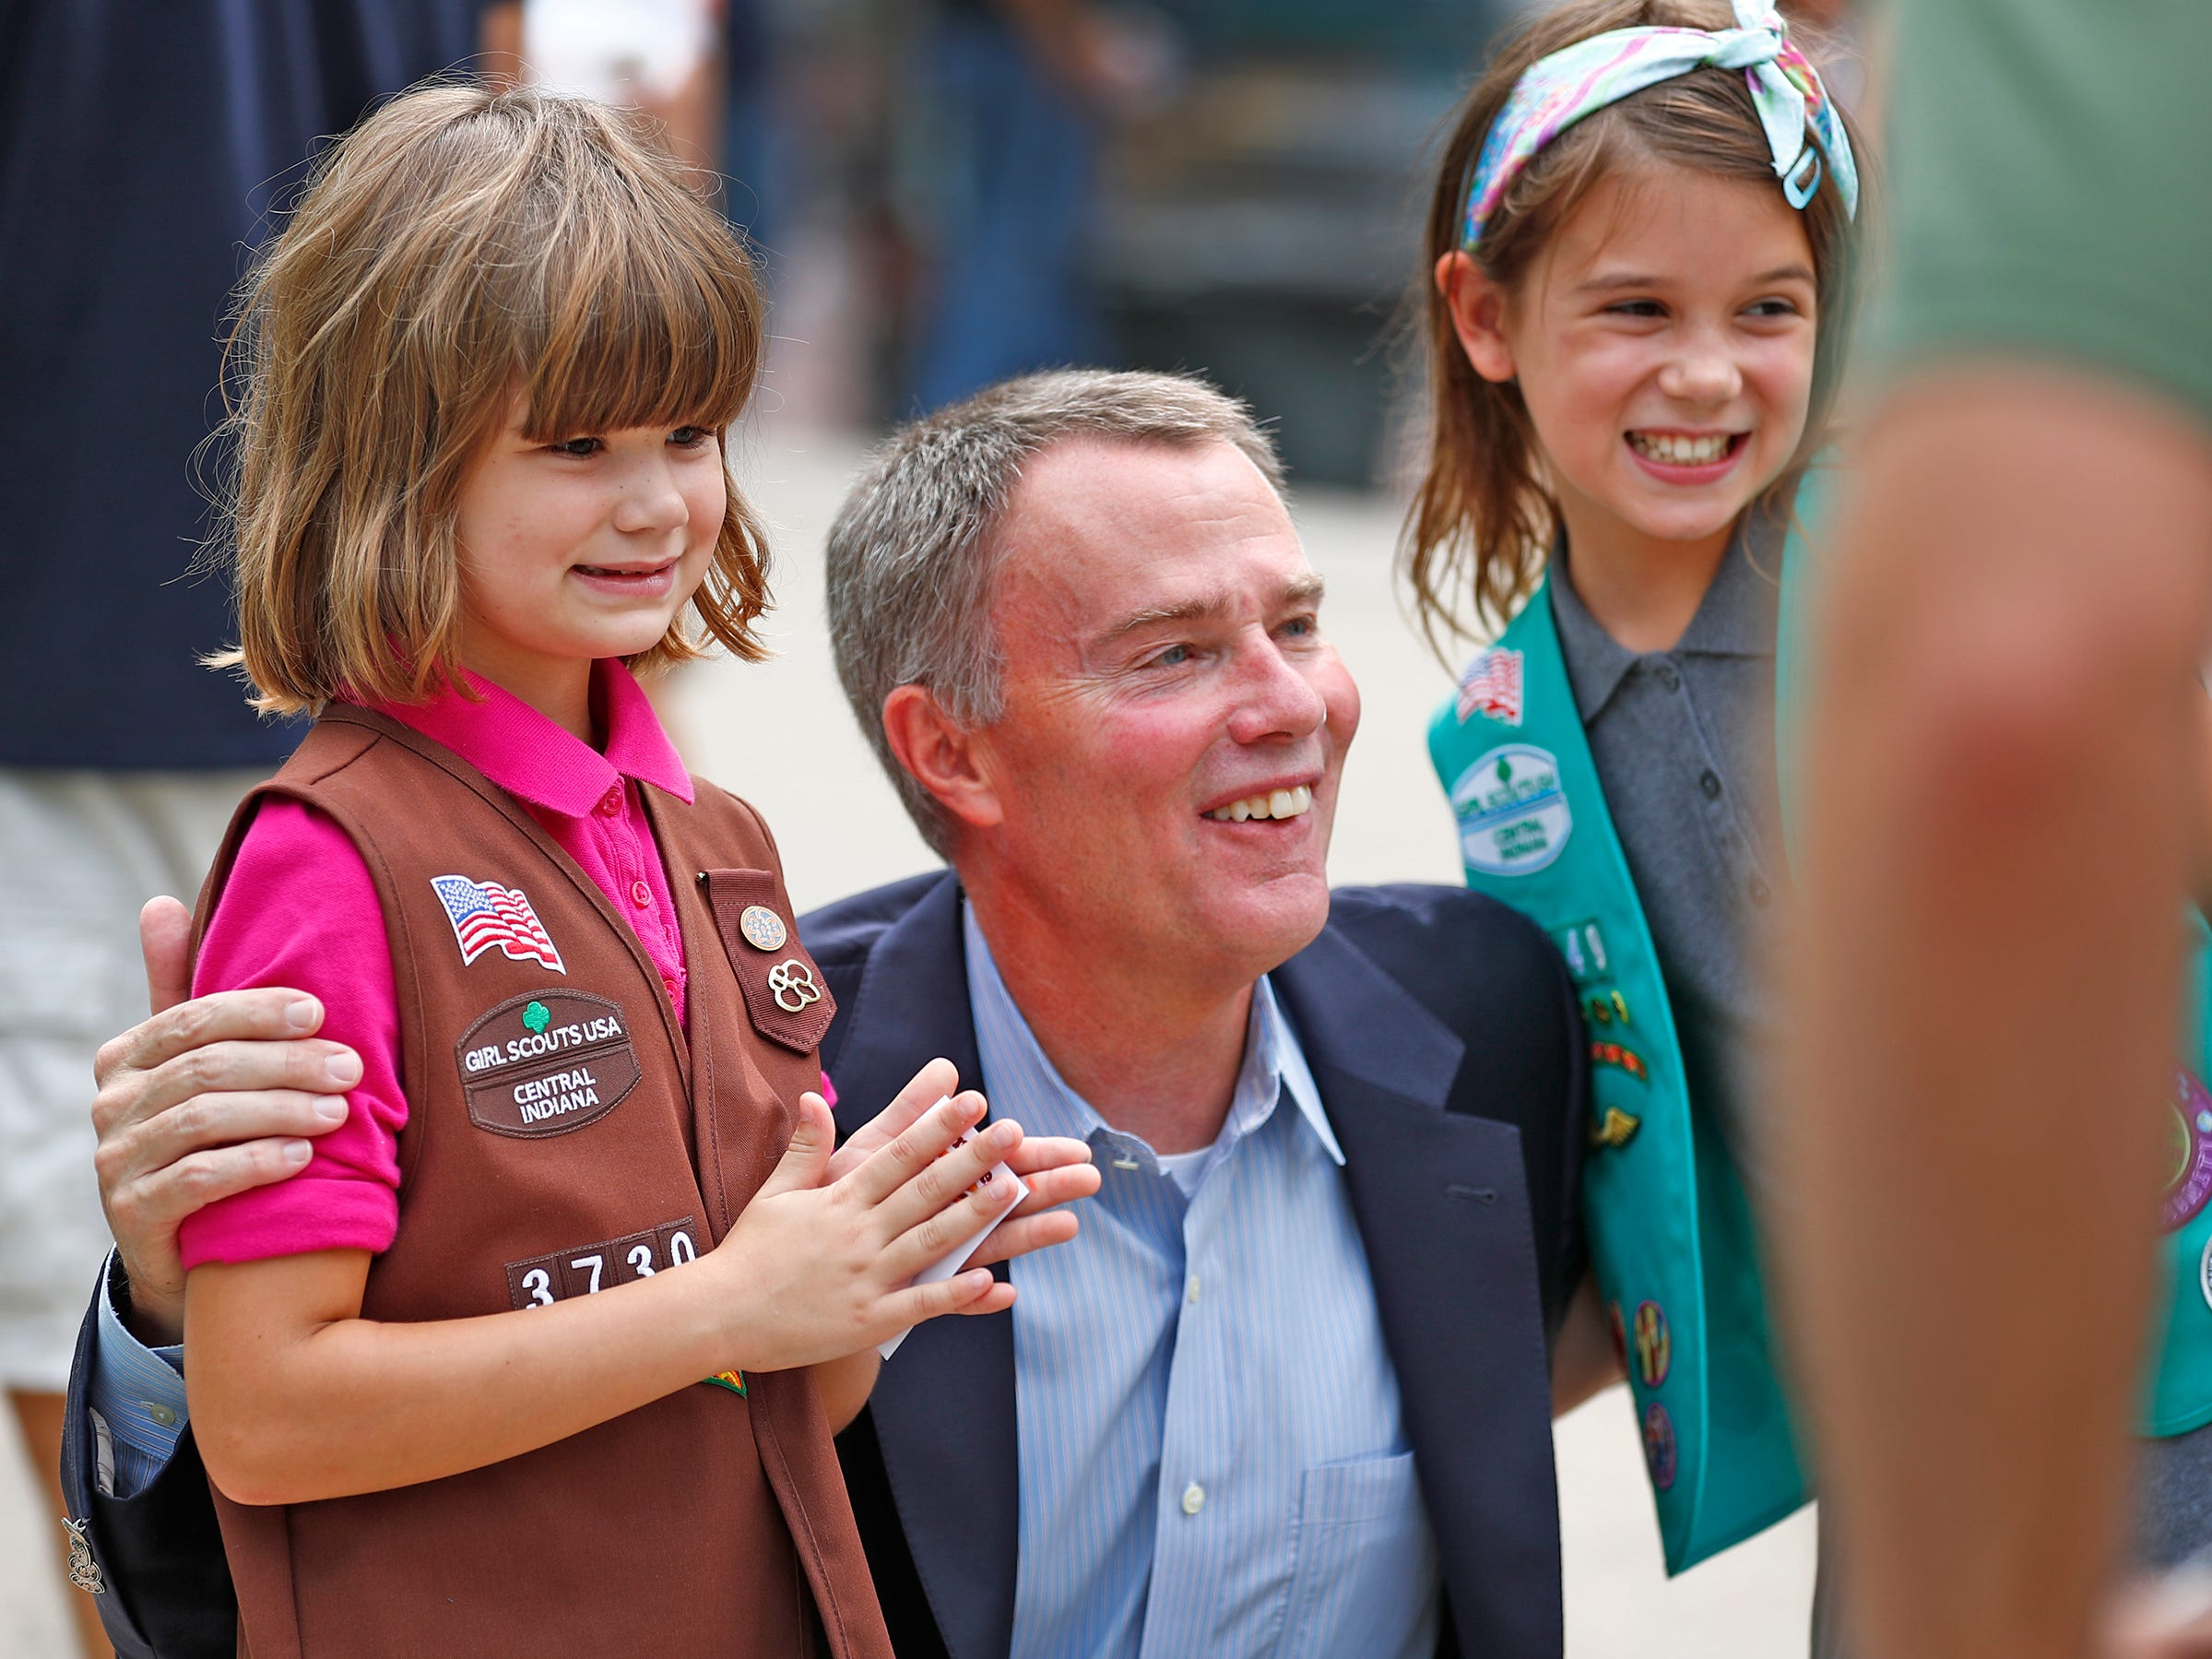 Marian and Vera McConnell, sisters, pose with Mayor Joe Hogsett during the Girl Scouts' S'mores on the Circle event, Friday, Aug. 10, 2018.  The event celebrated National S'mores Day.  Seven local chefs were featured, creating gourmet s'mores treats, sold as a fundraiser.  Proceeds go for financial assistance for Girl Scouts, helping all girls who want to be a girl scout participating in hands-on adventures and STEM activities.